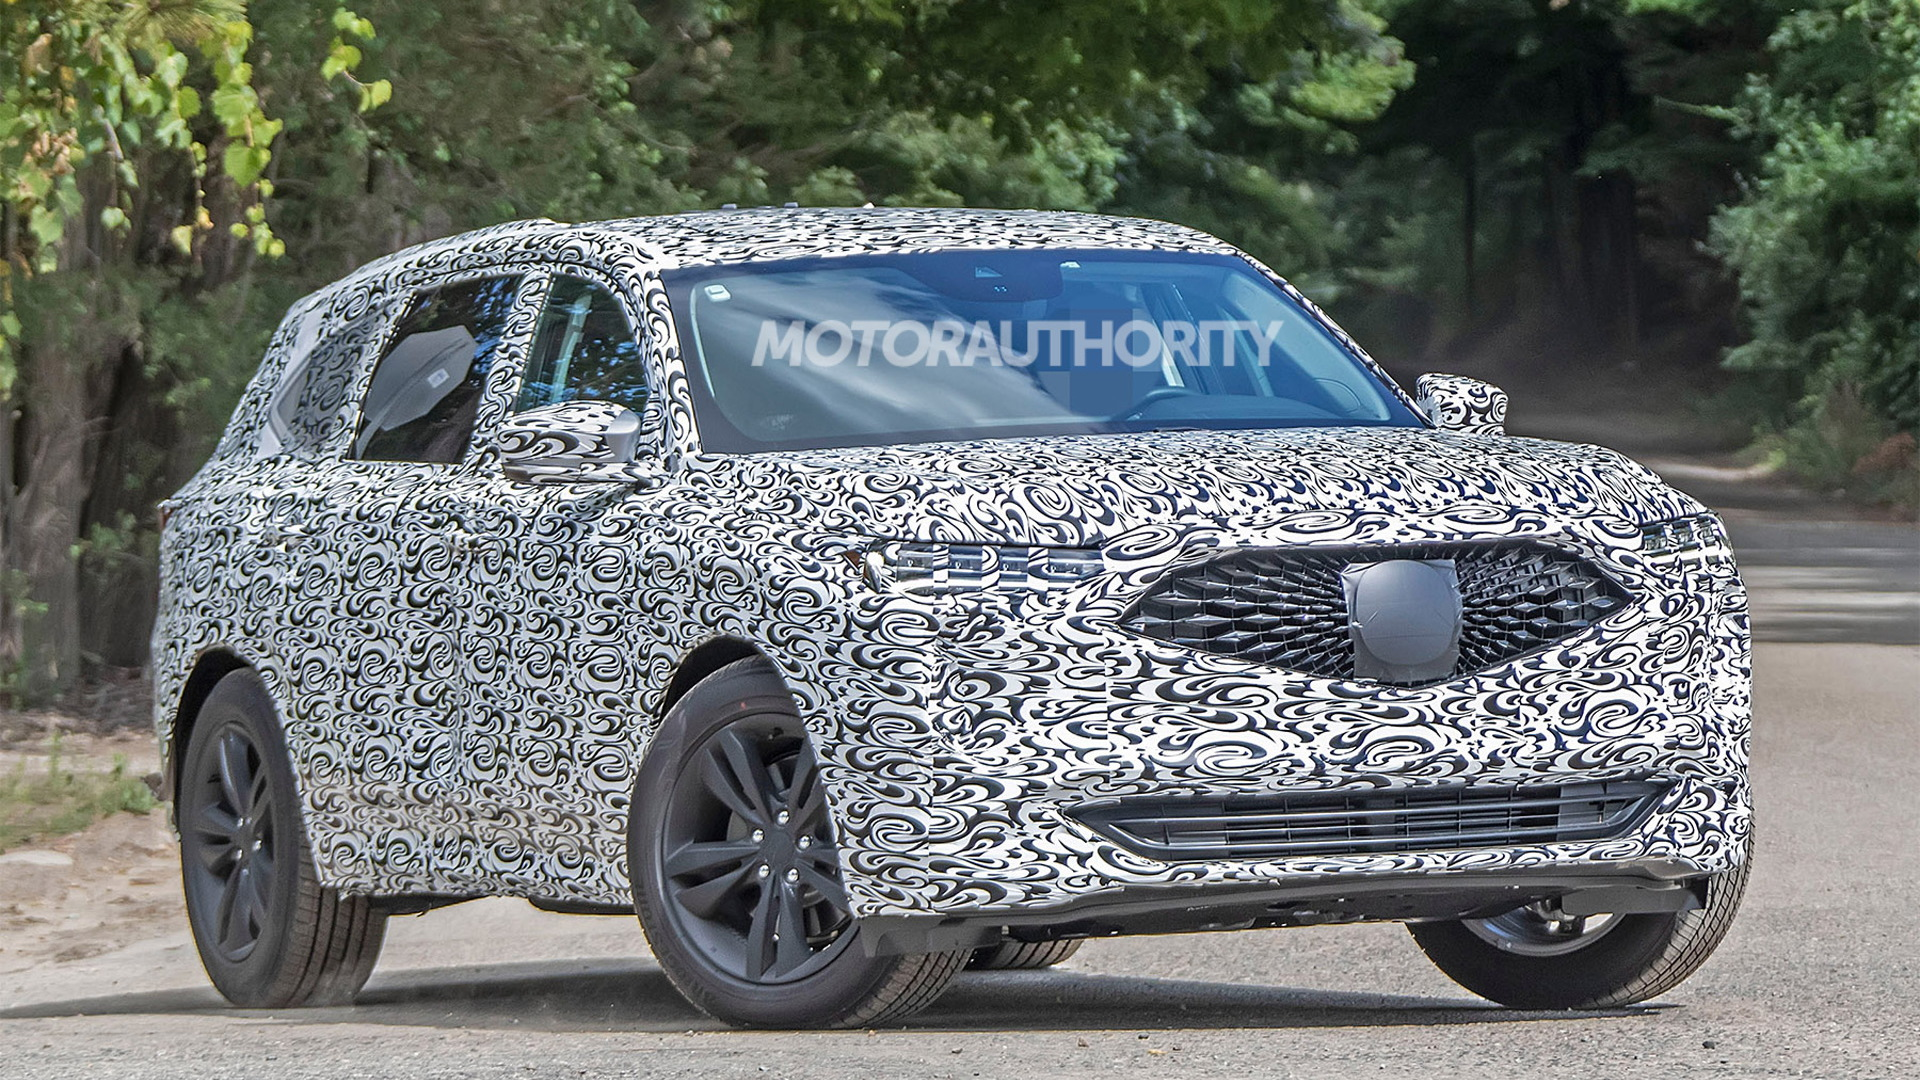 2021 Acura MDX spy shots - Photo credit: S. Baldauf/SB-Medien